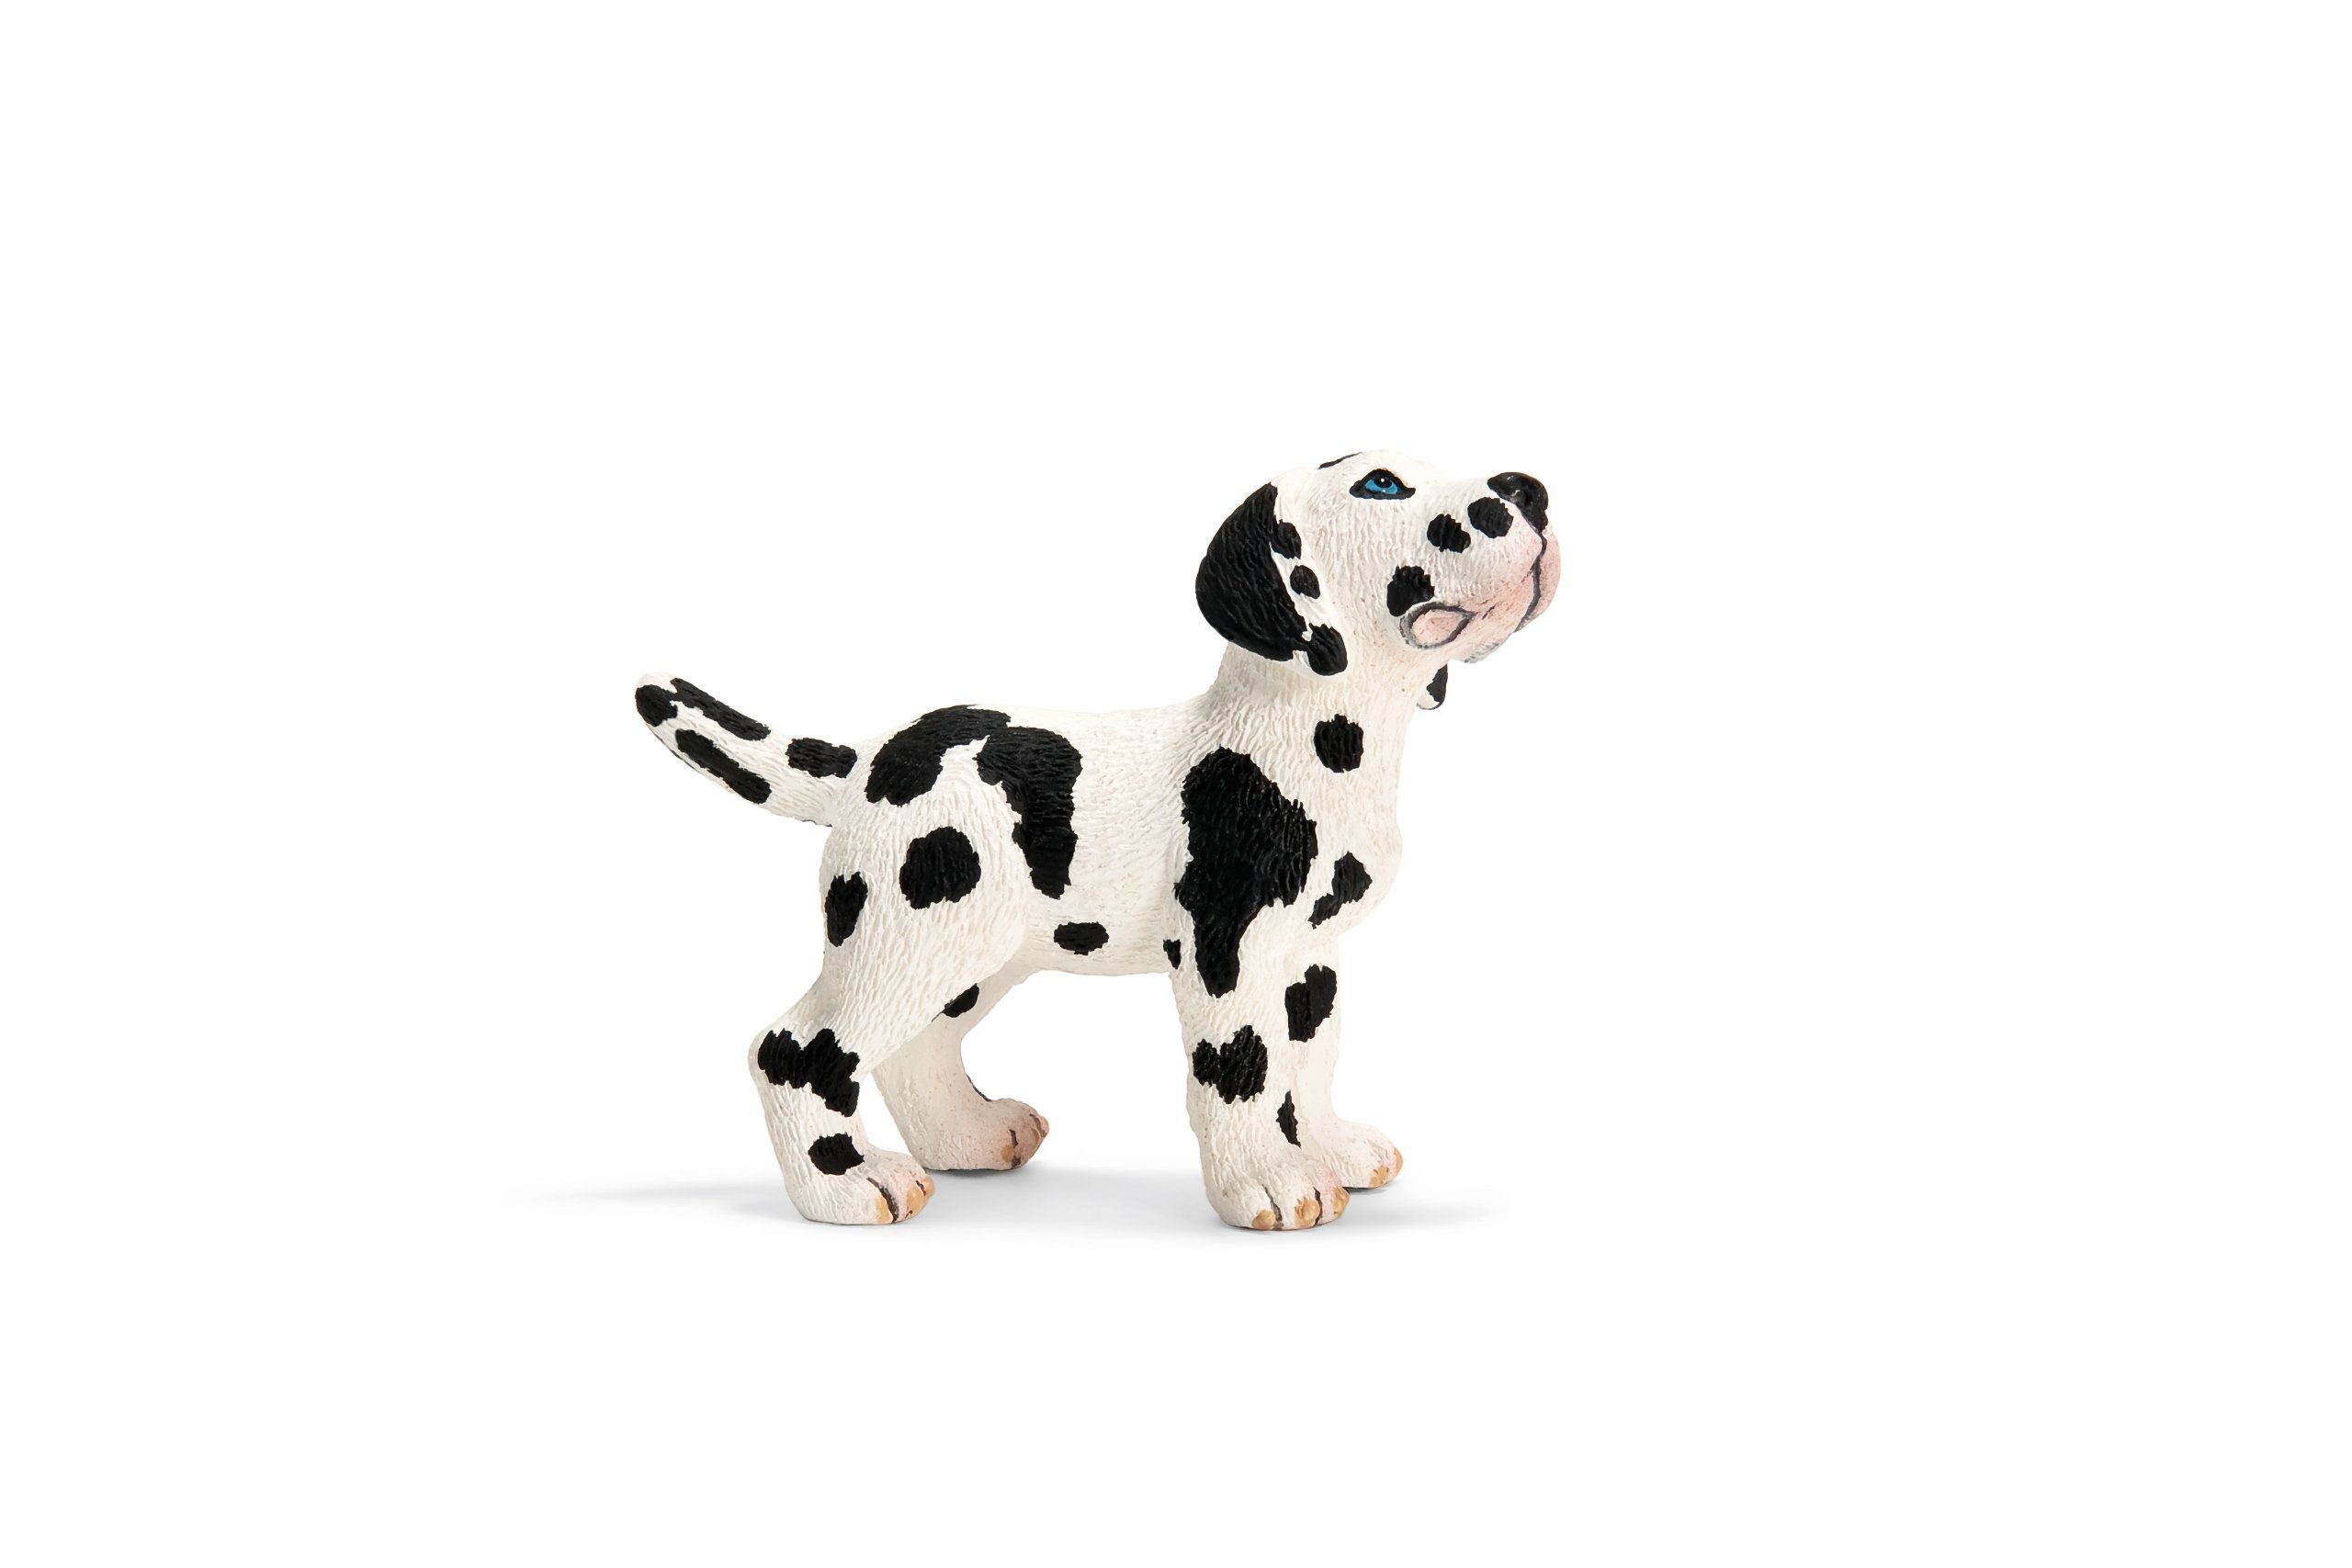 Schleich Great Dane Puppy Toy Figure More Details Can Be